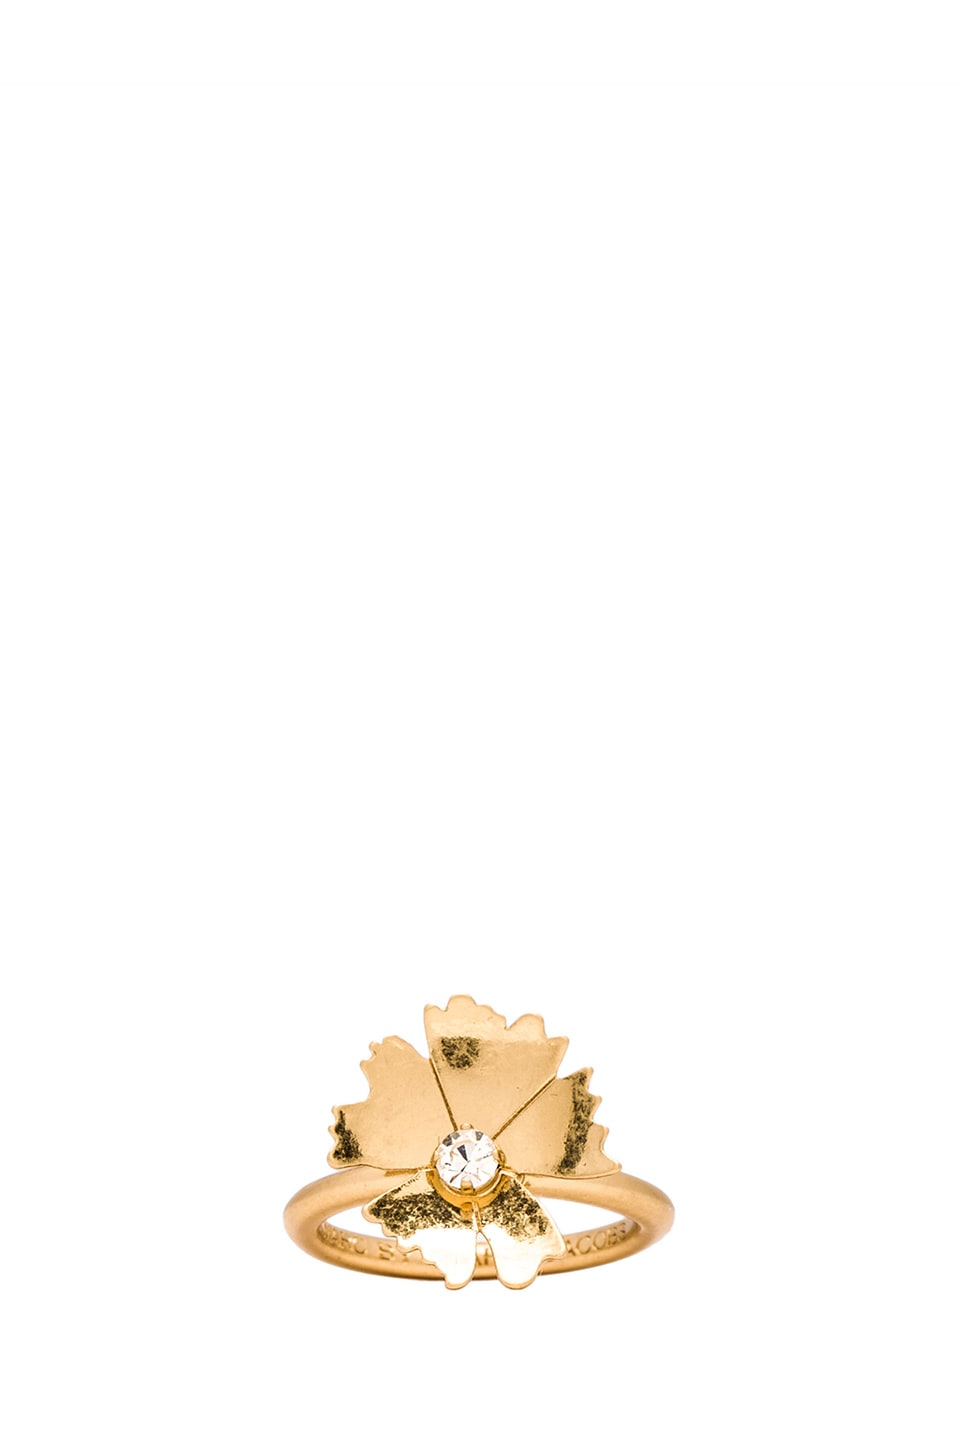 Marc by Marc Jacobs Pinwheel Flower Mini Ring in Antique Gold & Crystal